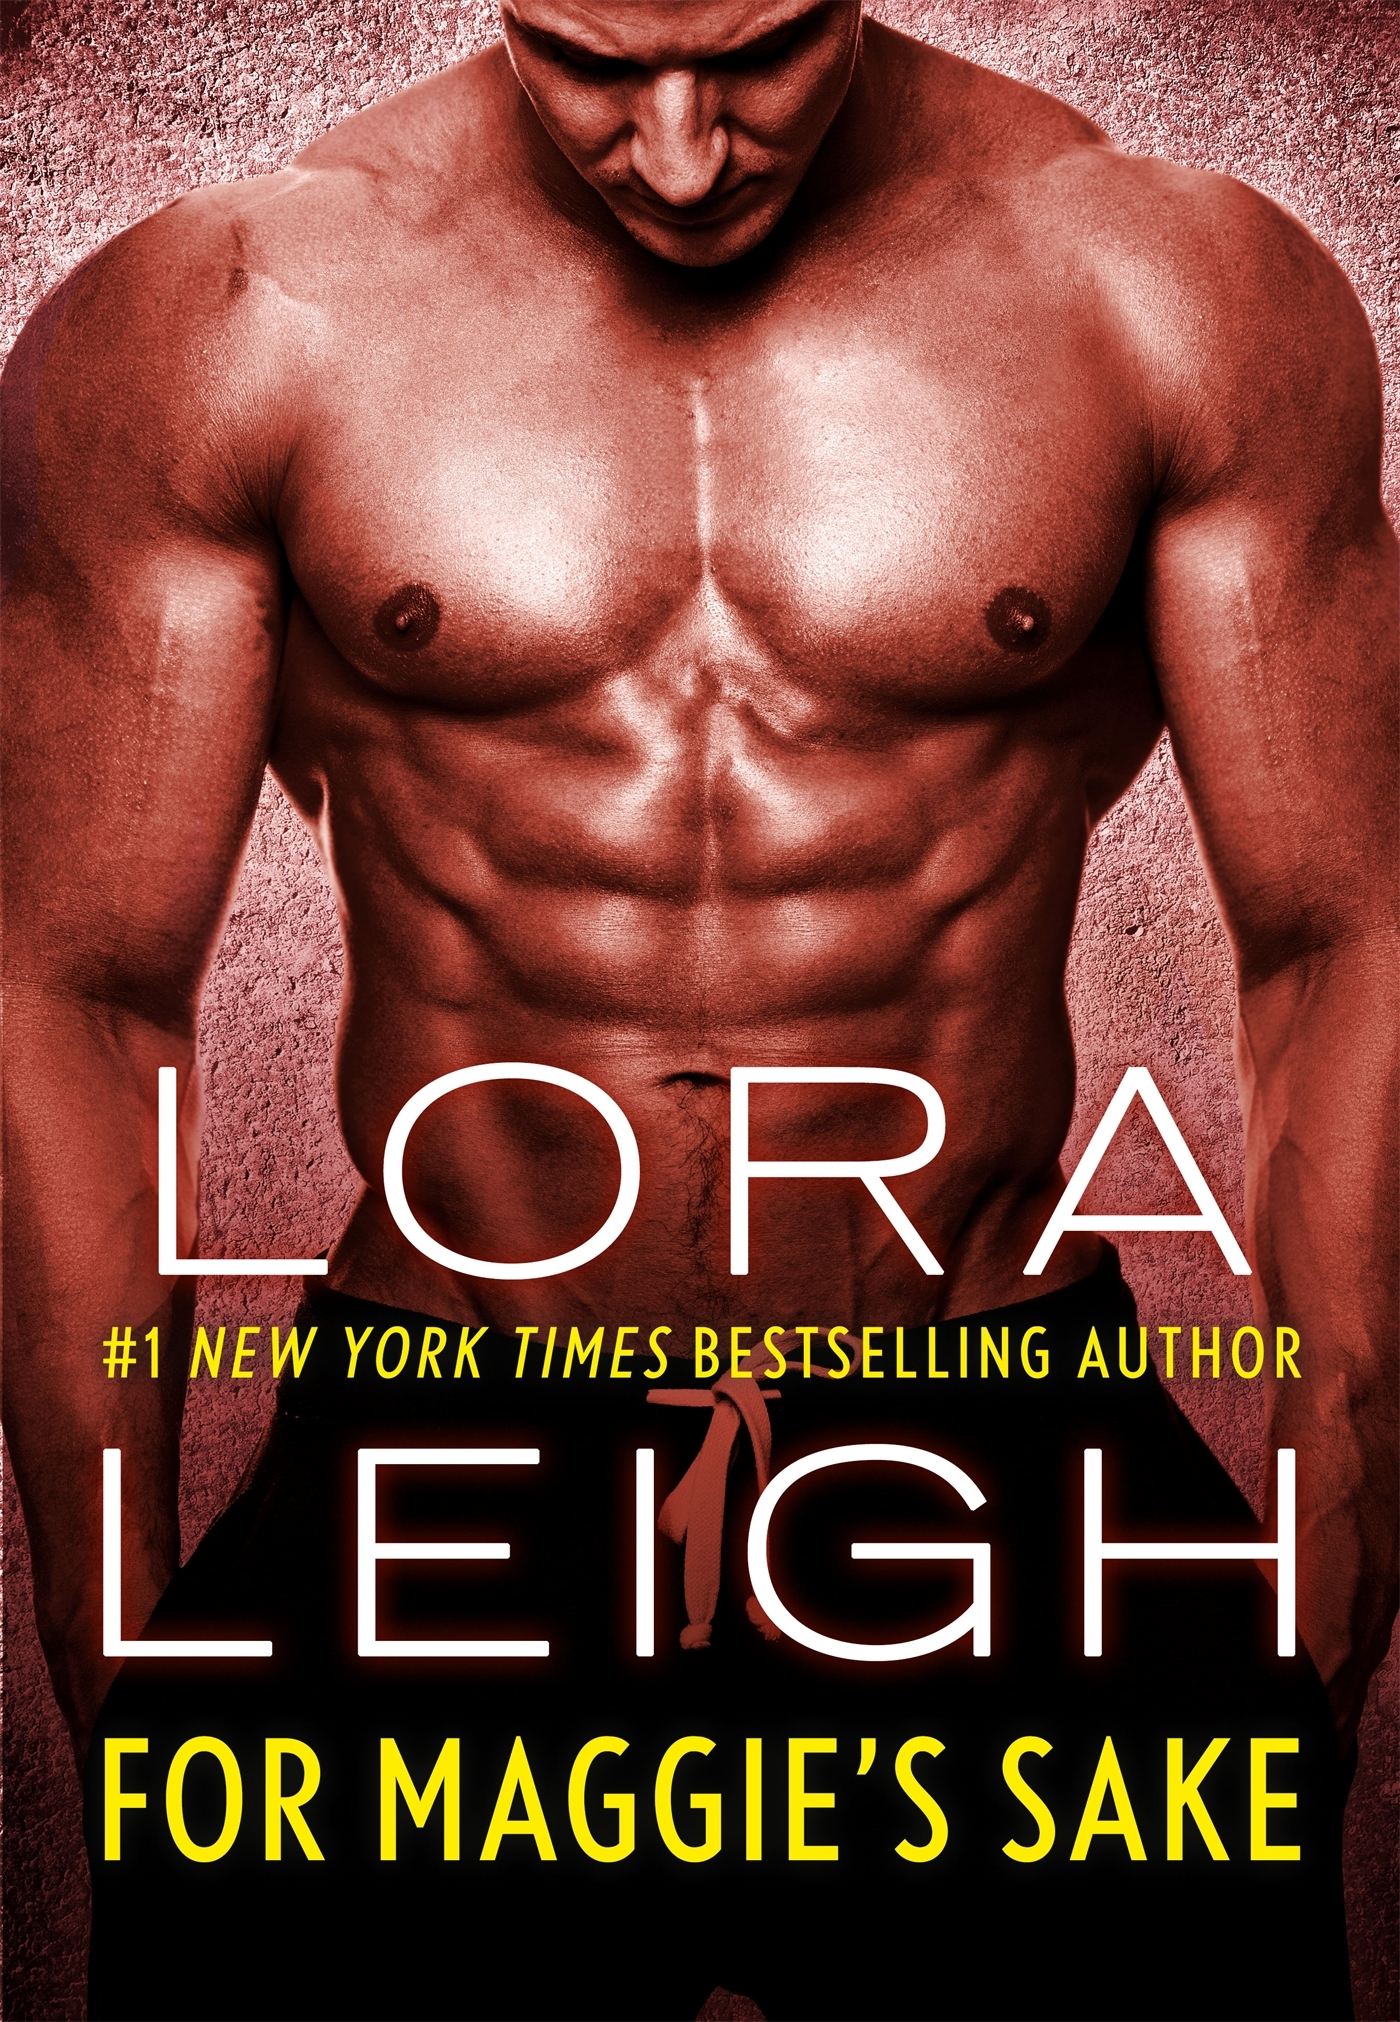 For Maggie's Sake by Lora Leigh